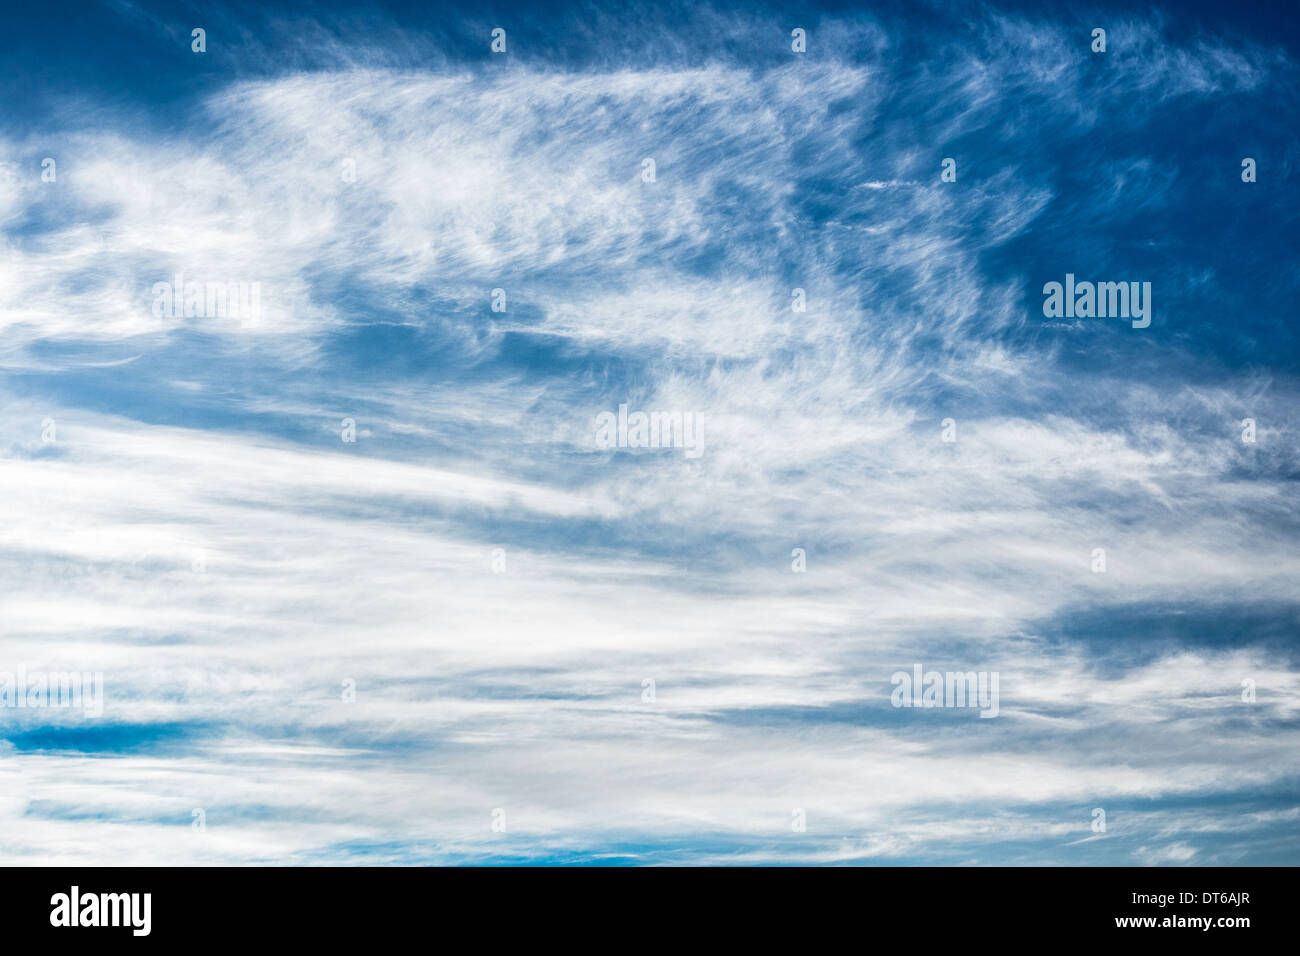 blue sky background, fluffy clouds - Stock Image